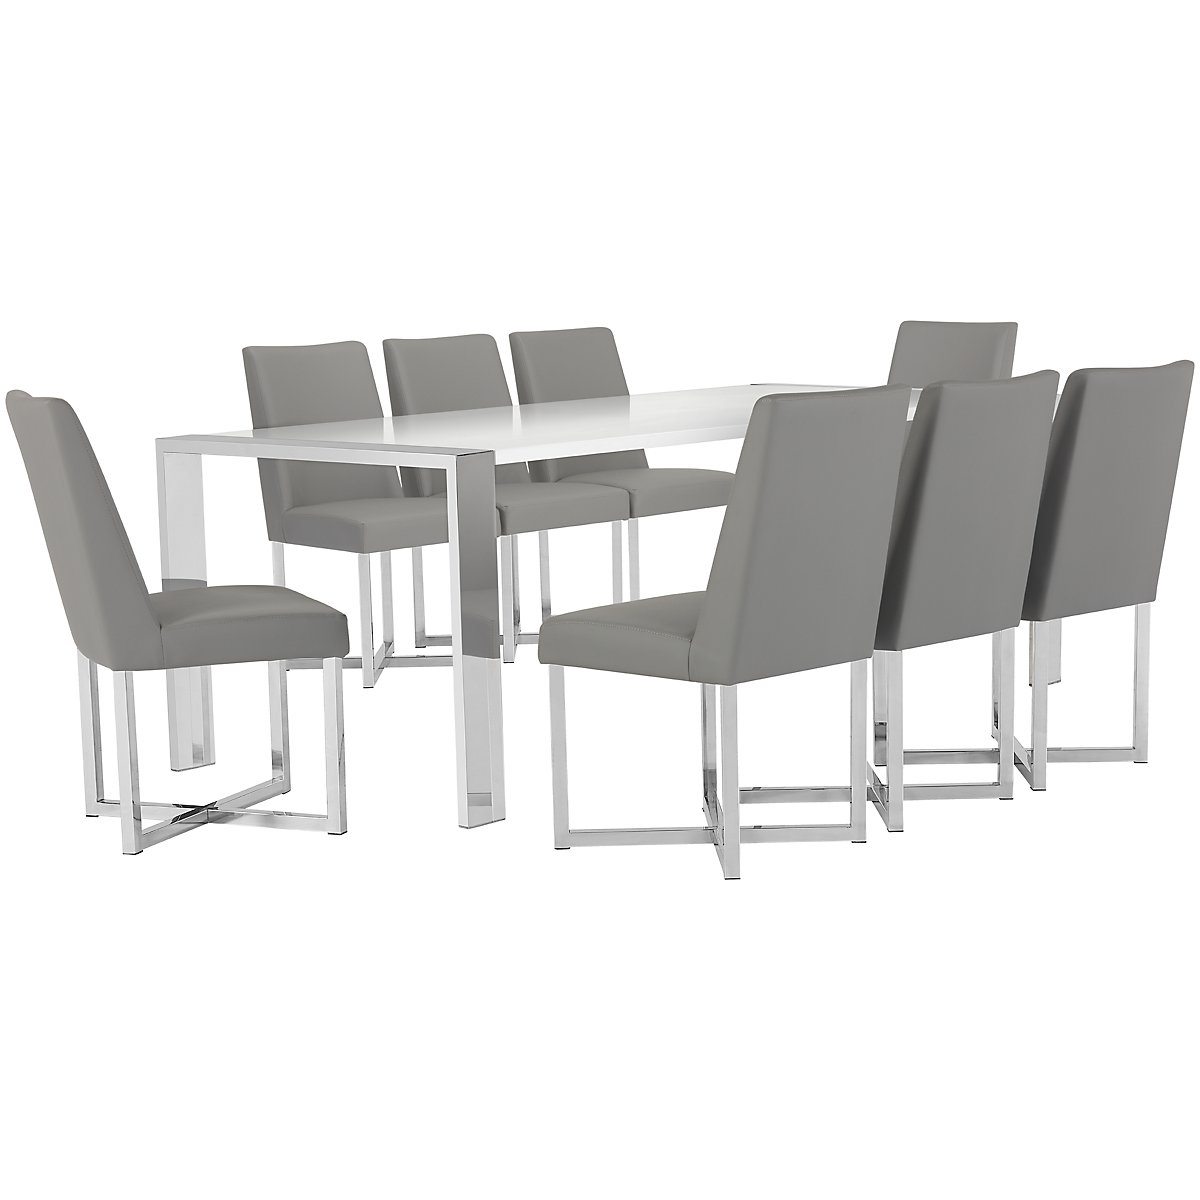 Neo Gray Rect Table & 4 Upholstered Chairs